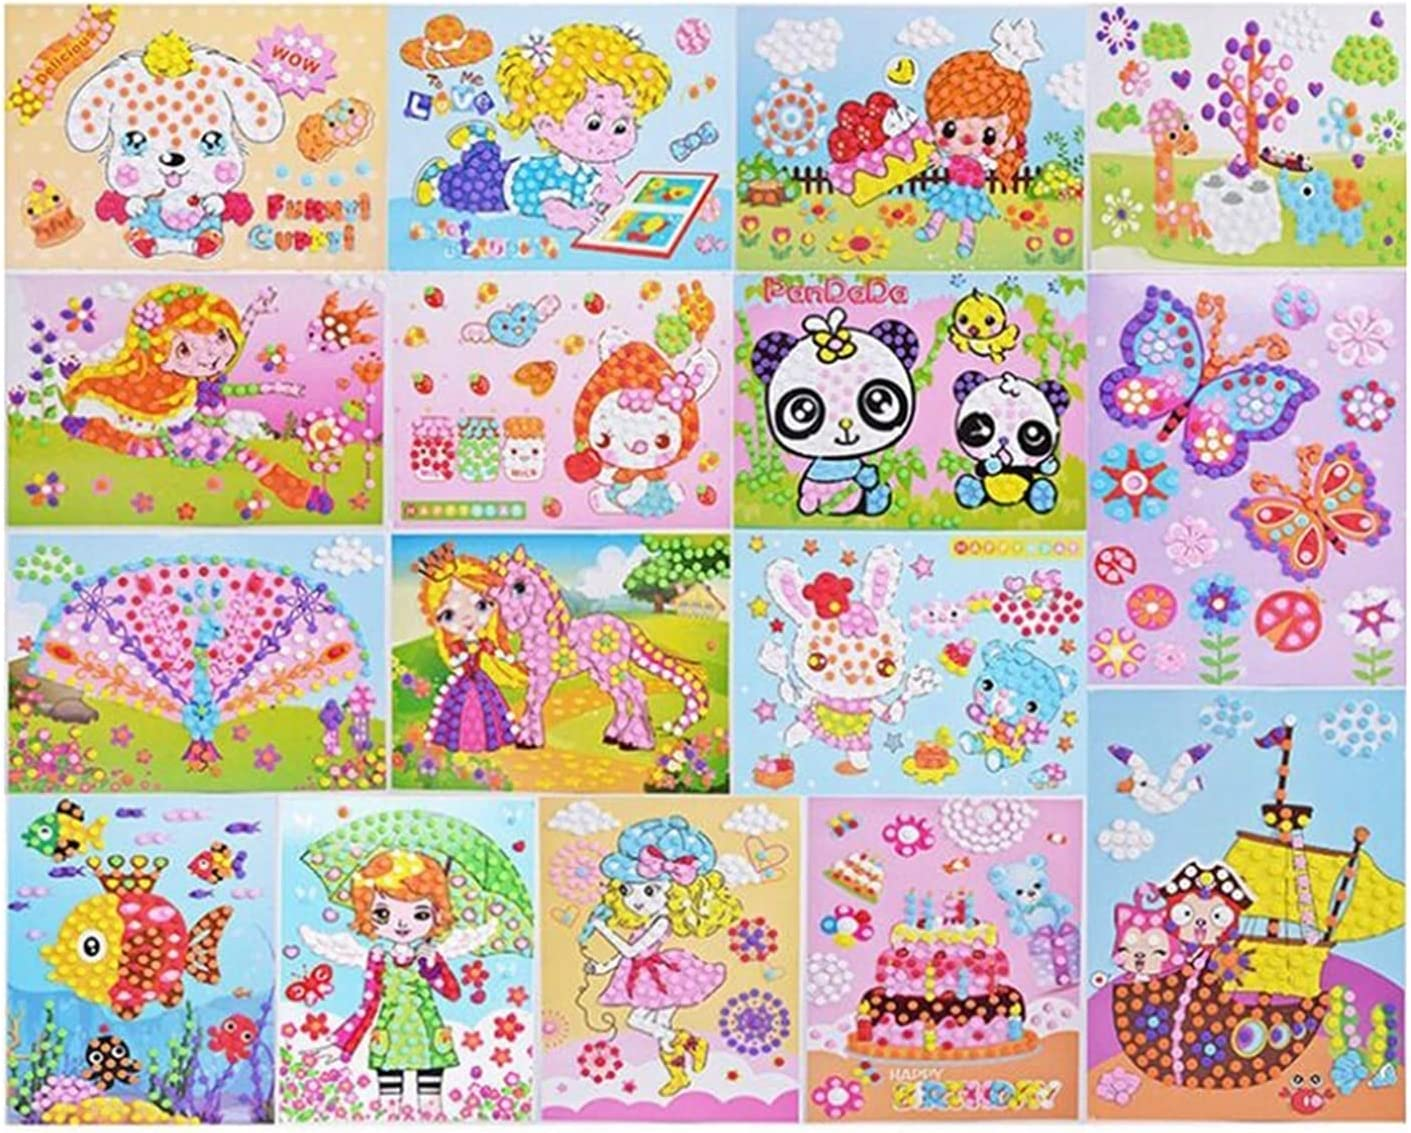 NOTEface Max 78% OFF Stickers for Kids 10pcs Sales of SALE items from new works Sticky 3D Mosaics Puz Dots